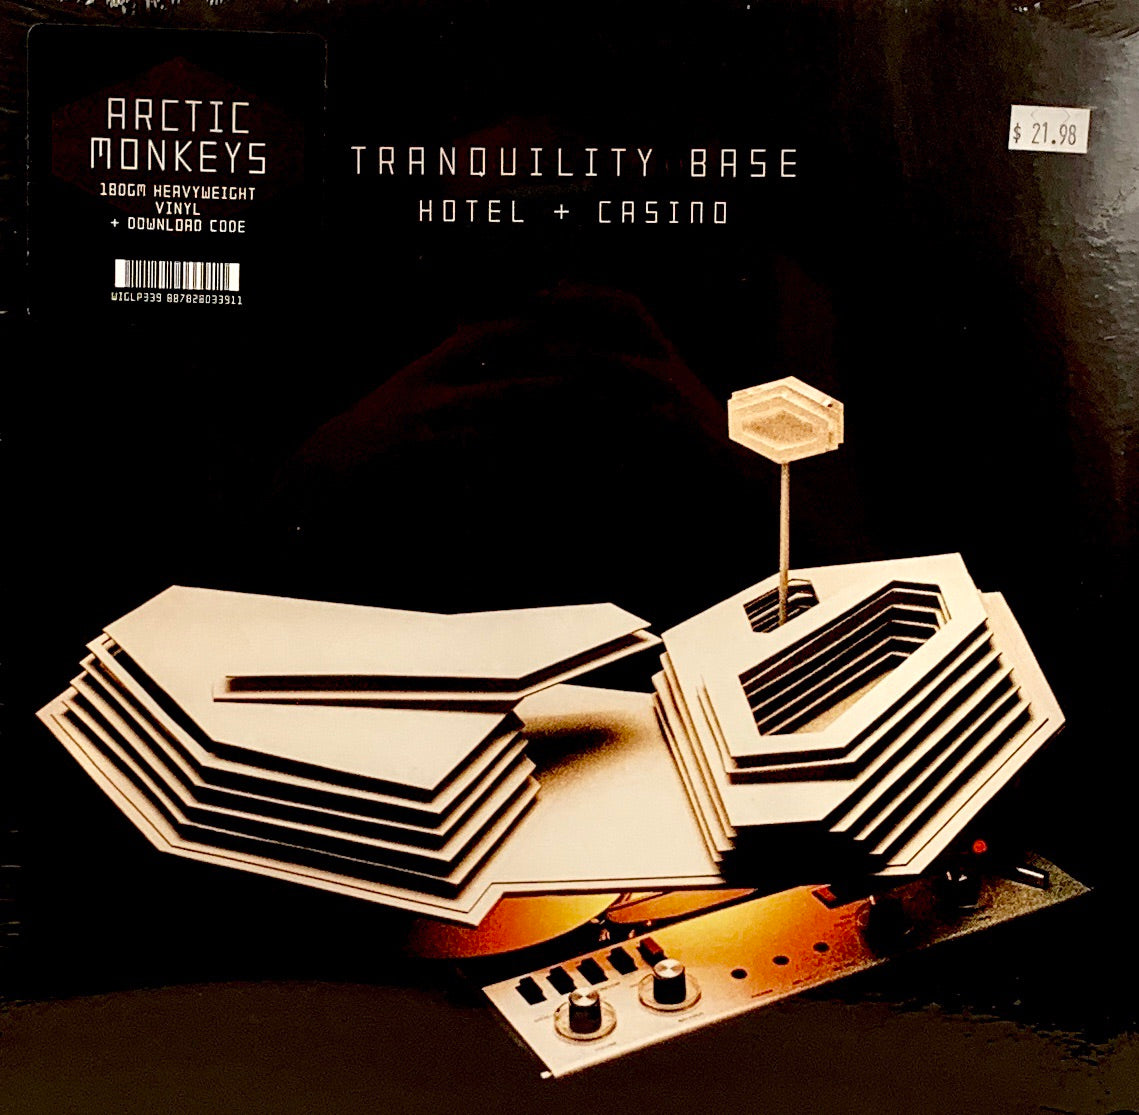 Arctic Monkeys - Tranquility Base Hotel + Casino